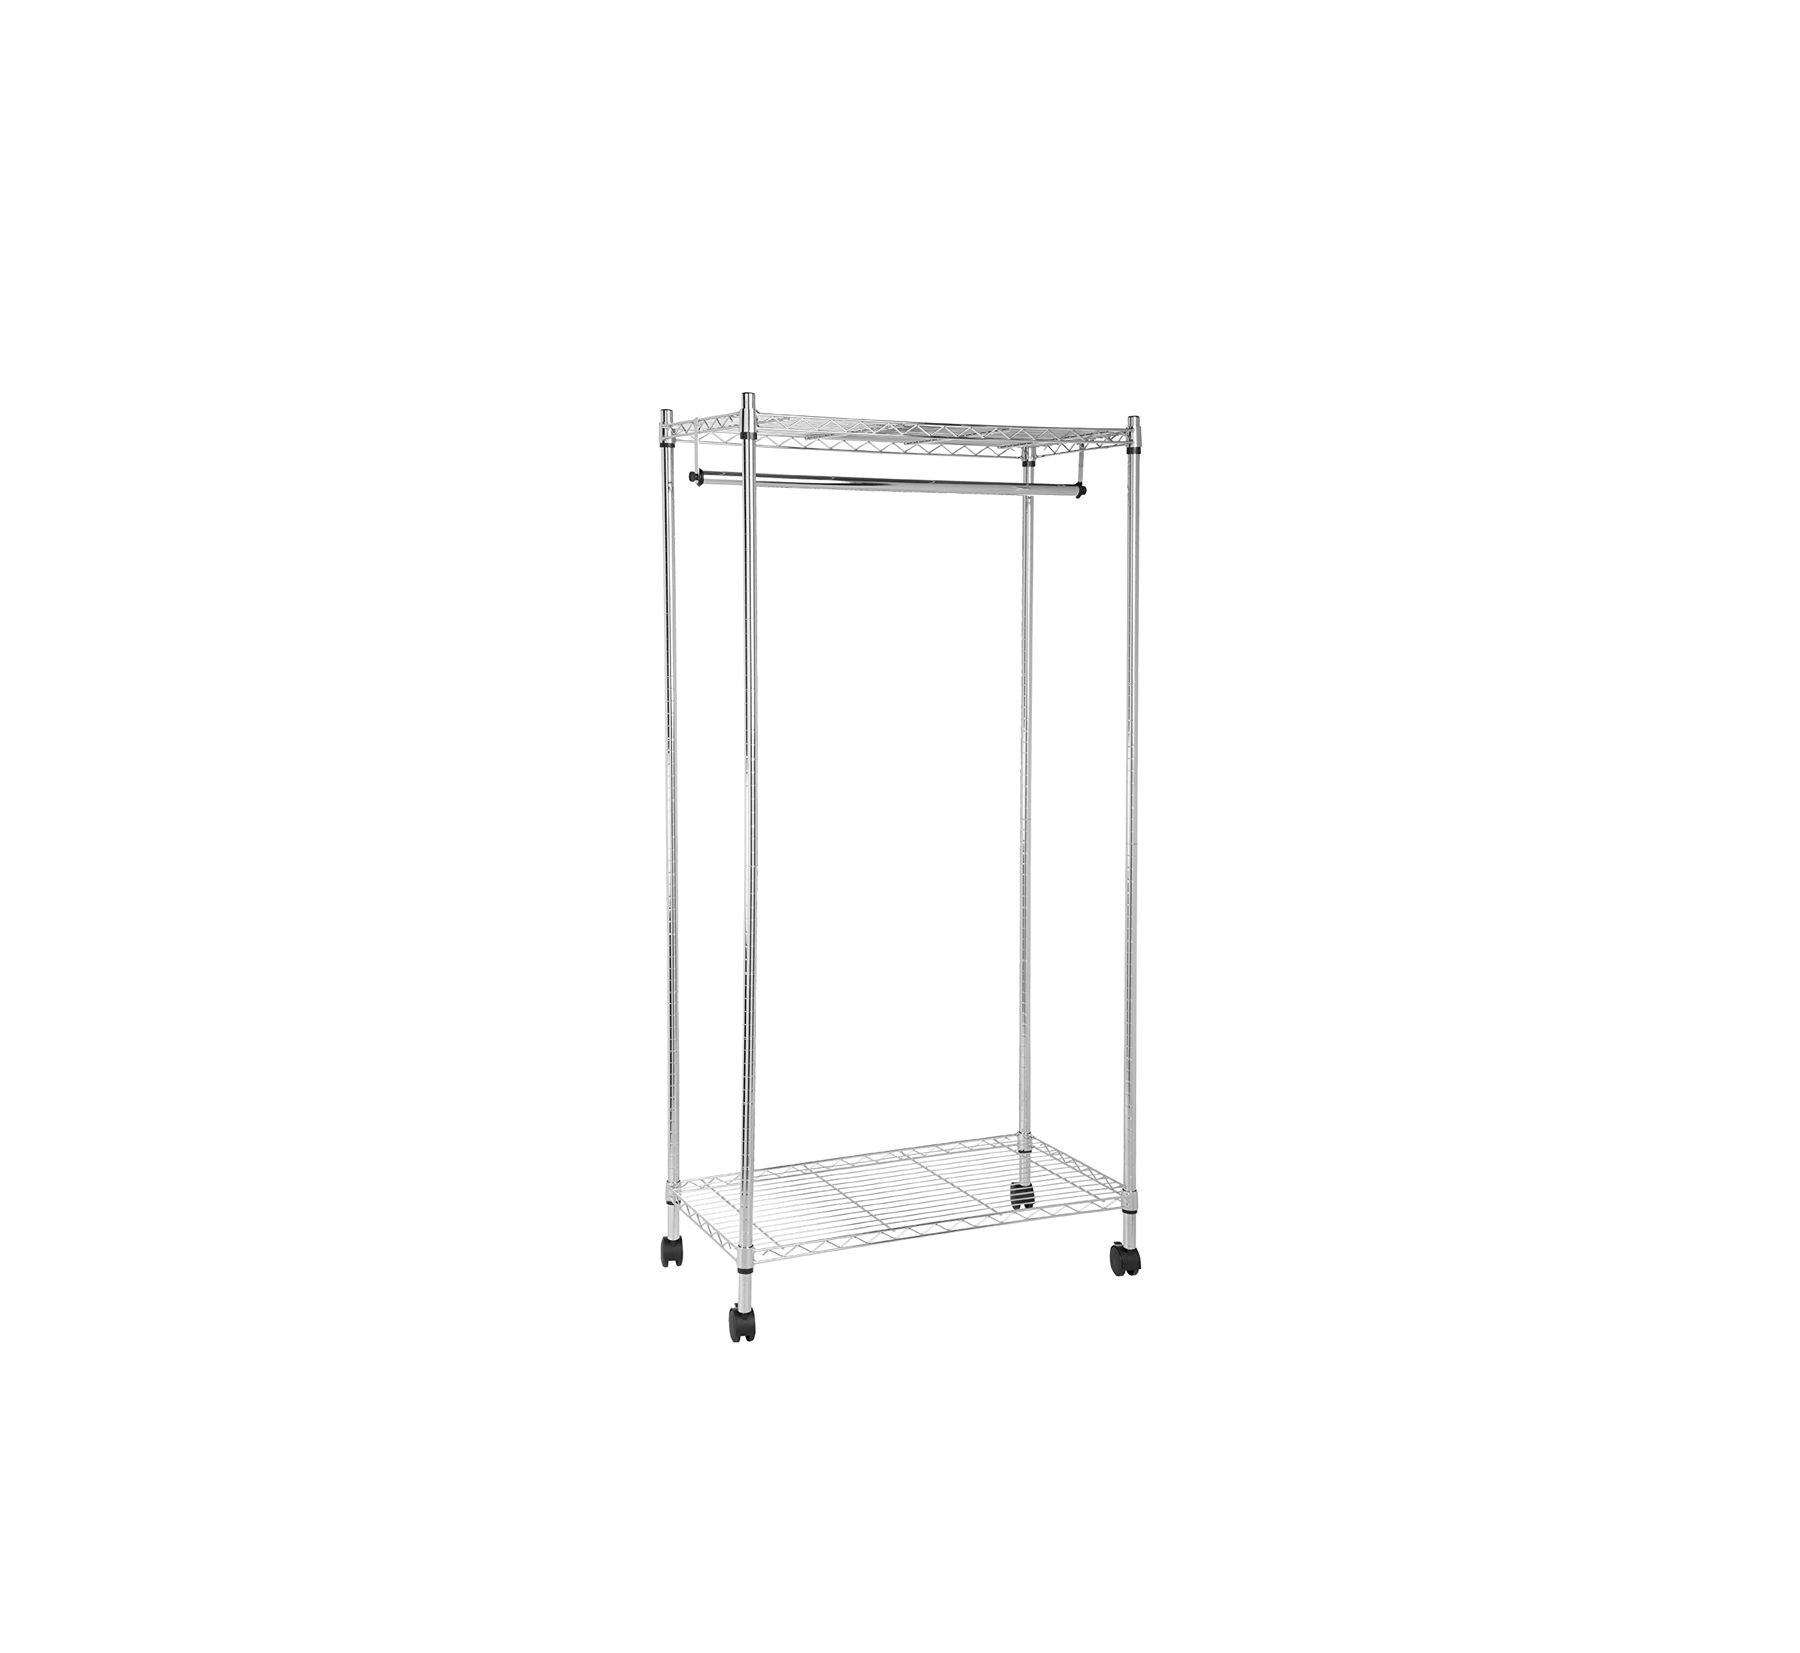 Best for Off-Season Storage: AmazonBasics Garment Rack with Top and Bottom Shelves